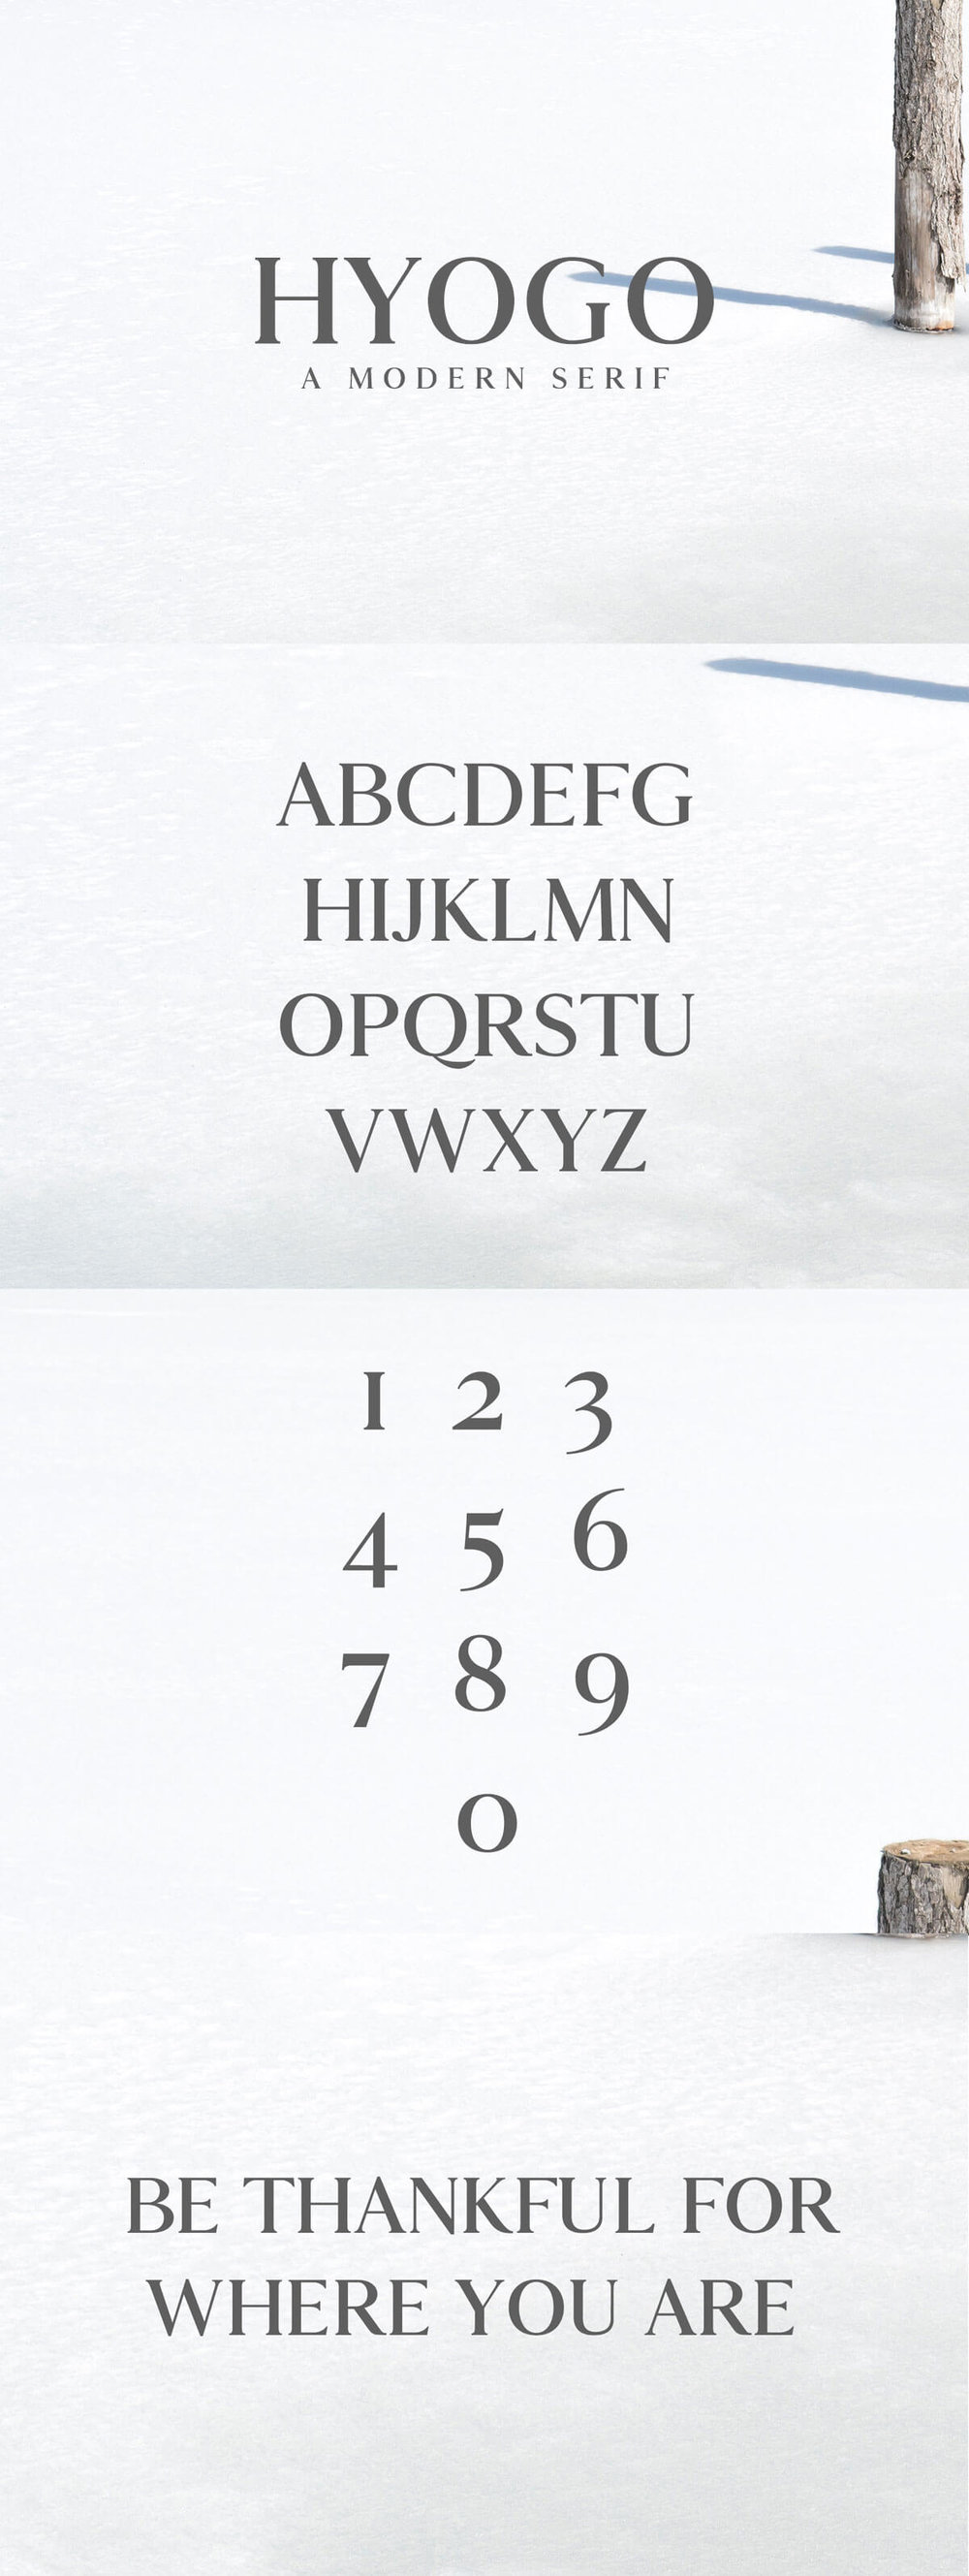 Free Hyogo #Modern #Serif #Font is a clean serif font for mixing some romance and charm to your designs. It contains uppercase and numbers only.